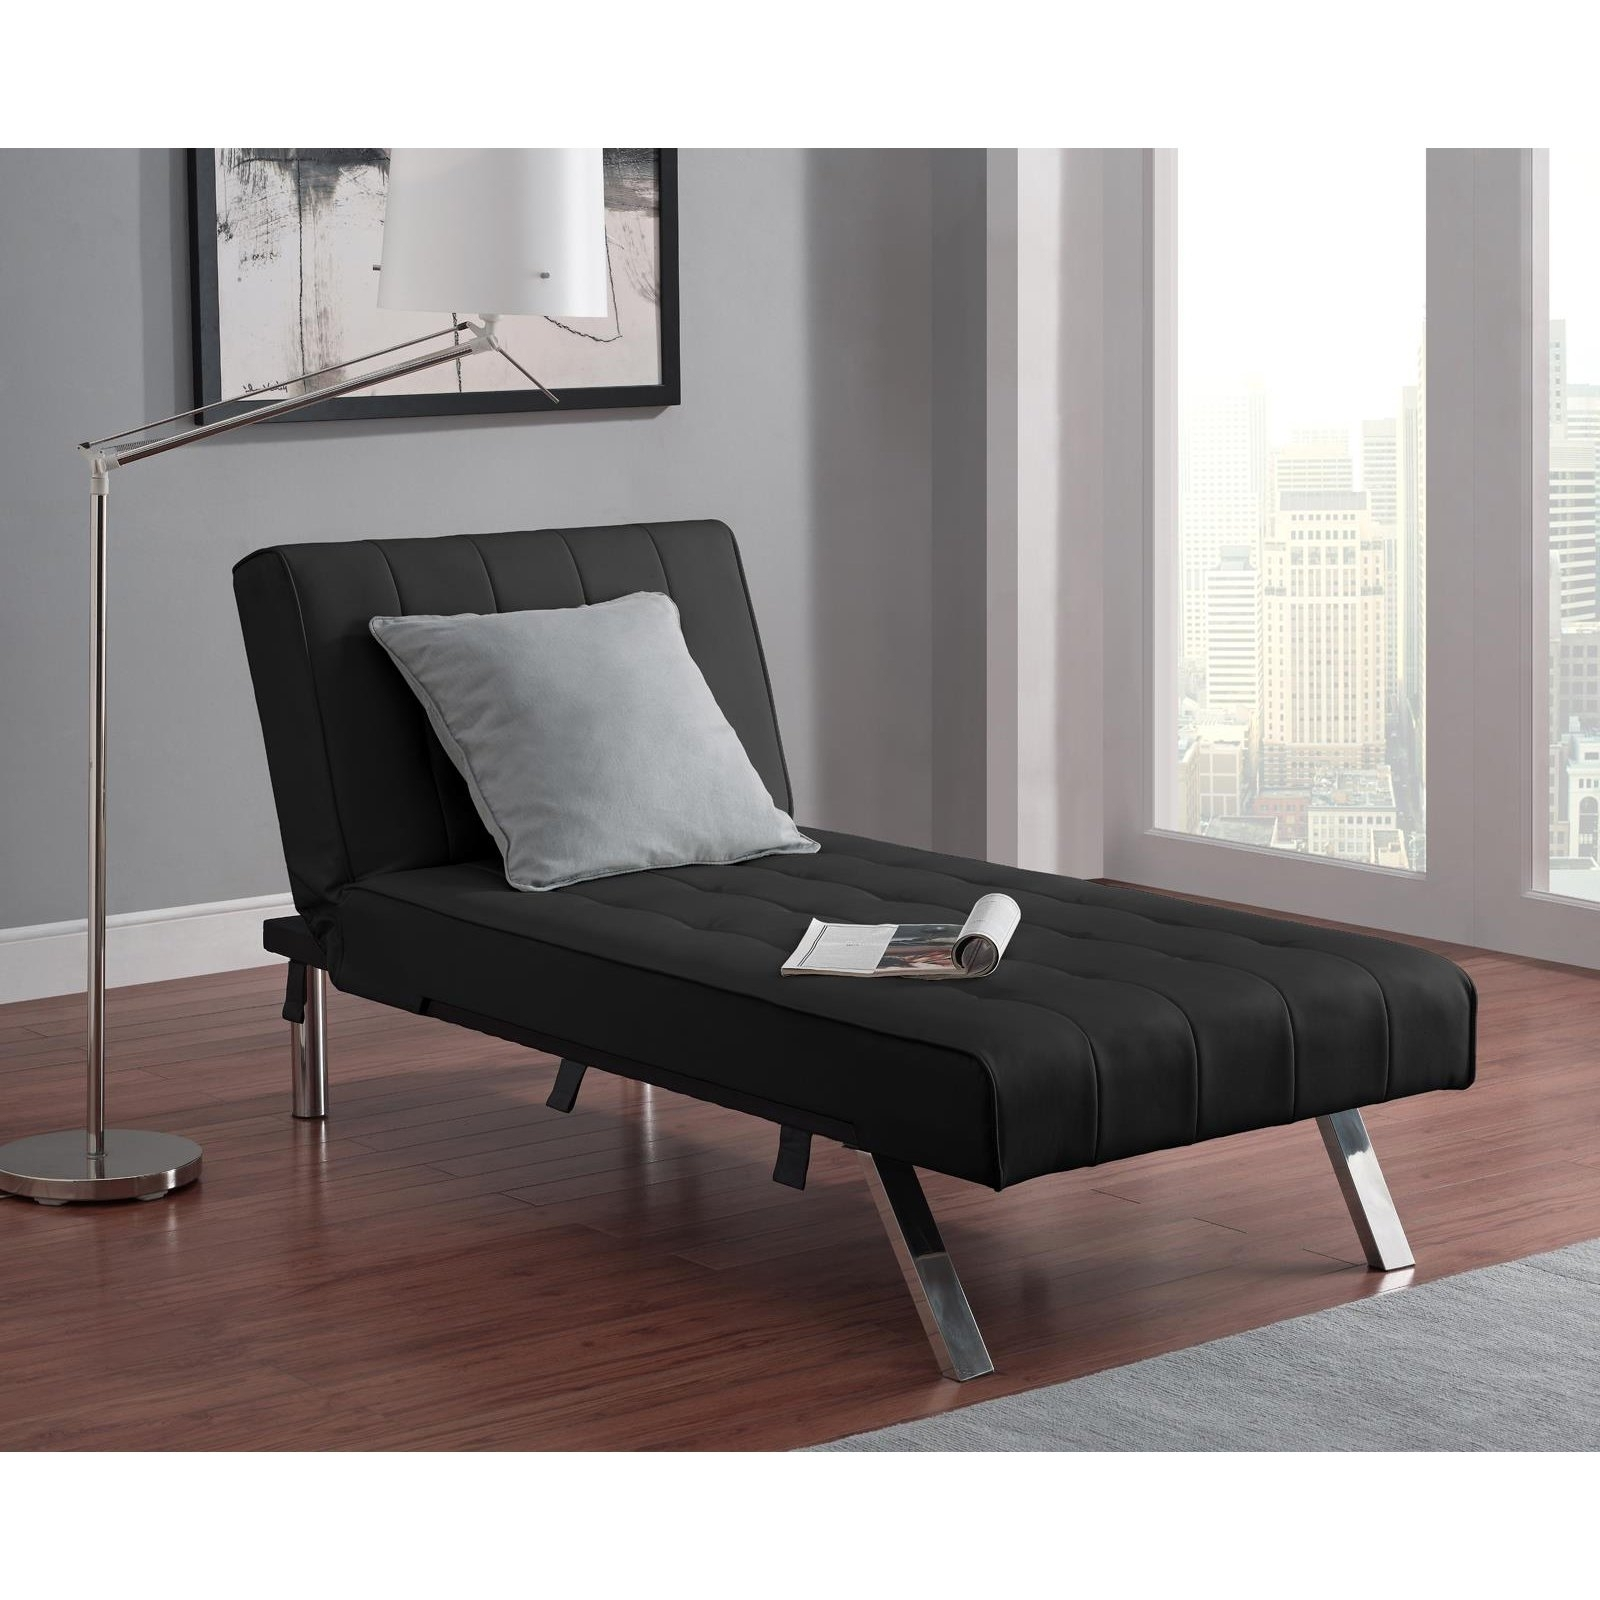 Current Contemporary Chaises Intended For Lounge Chair : Chaise Lounge Chairs Chaise Longue Furniture (View 6 of 15)